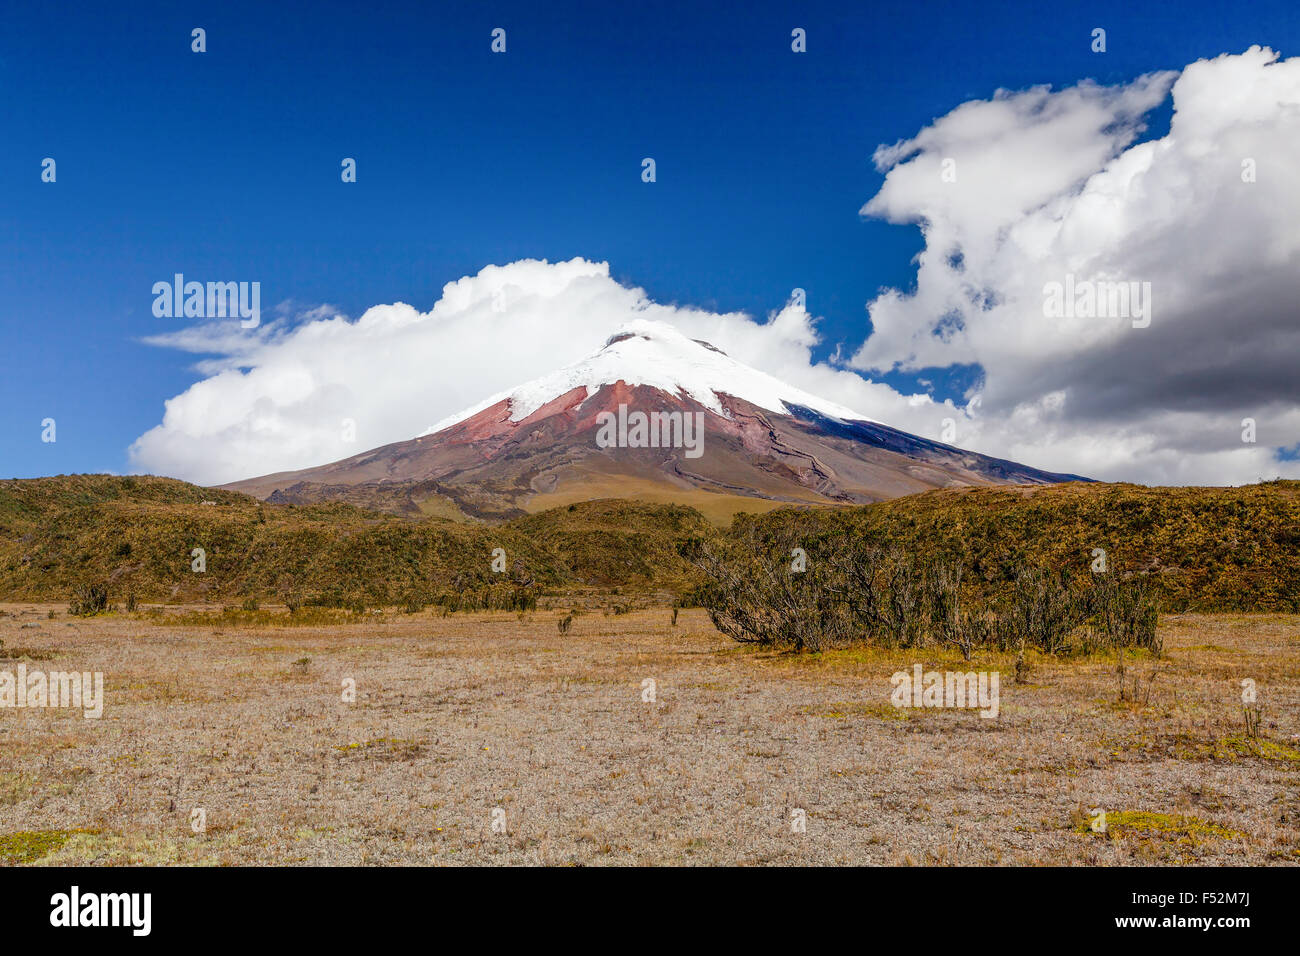 Cotopaxi Is A Volcano In The Andes Mountain Near Quito Ecuador It Is The 2Nd Highest Summit In The Country - Stock Image